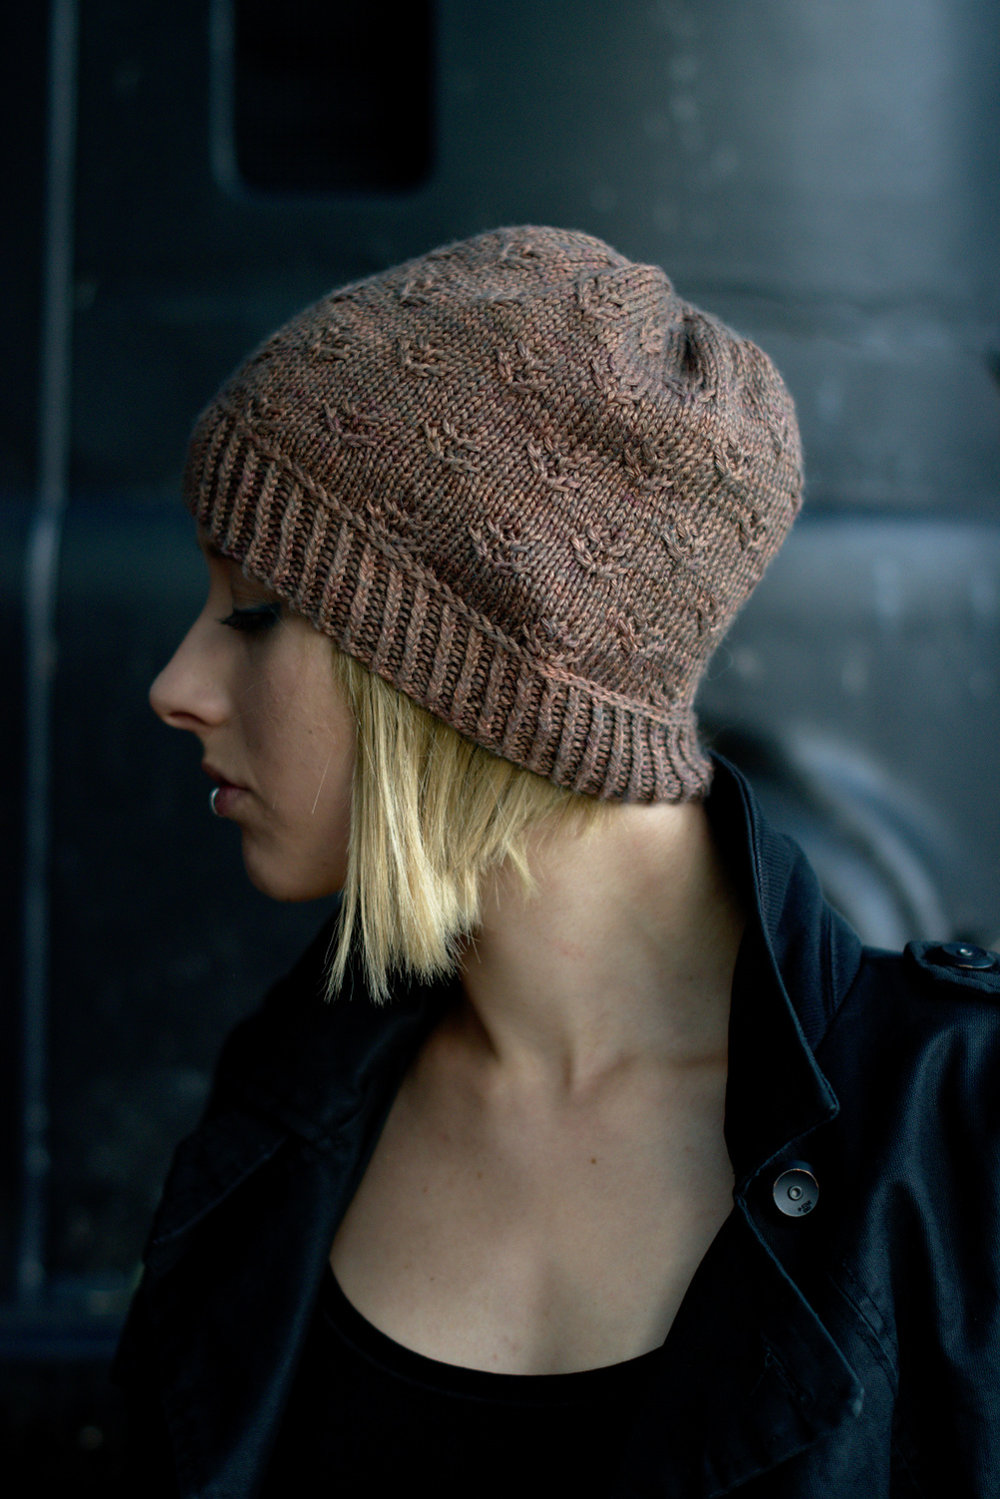 Ponderosa slouchy hat hand knitting pattern for DK yarn